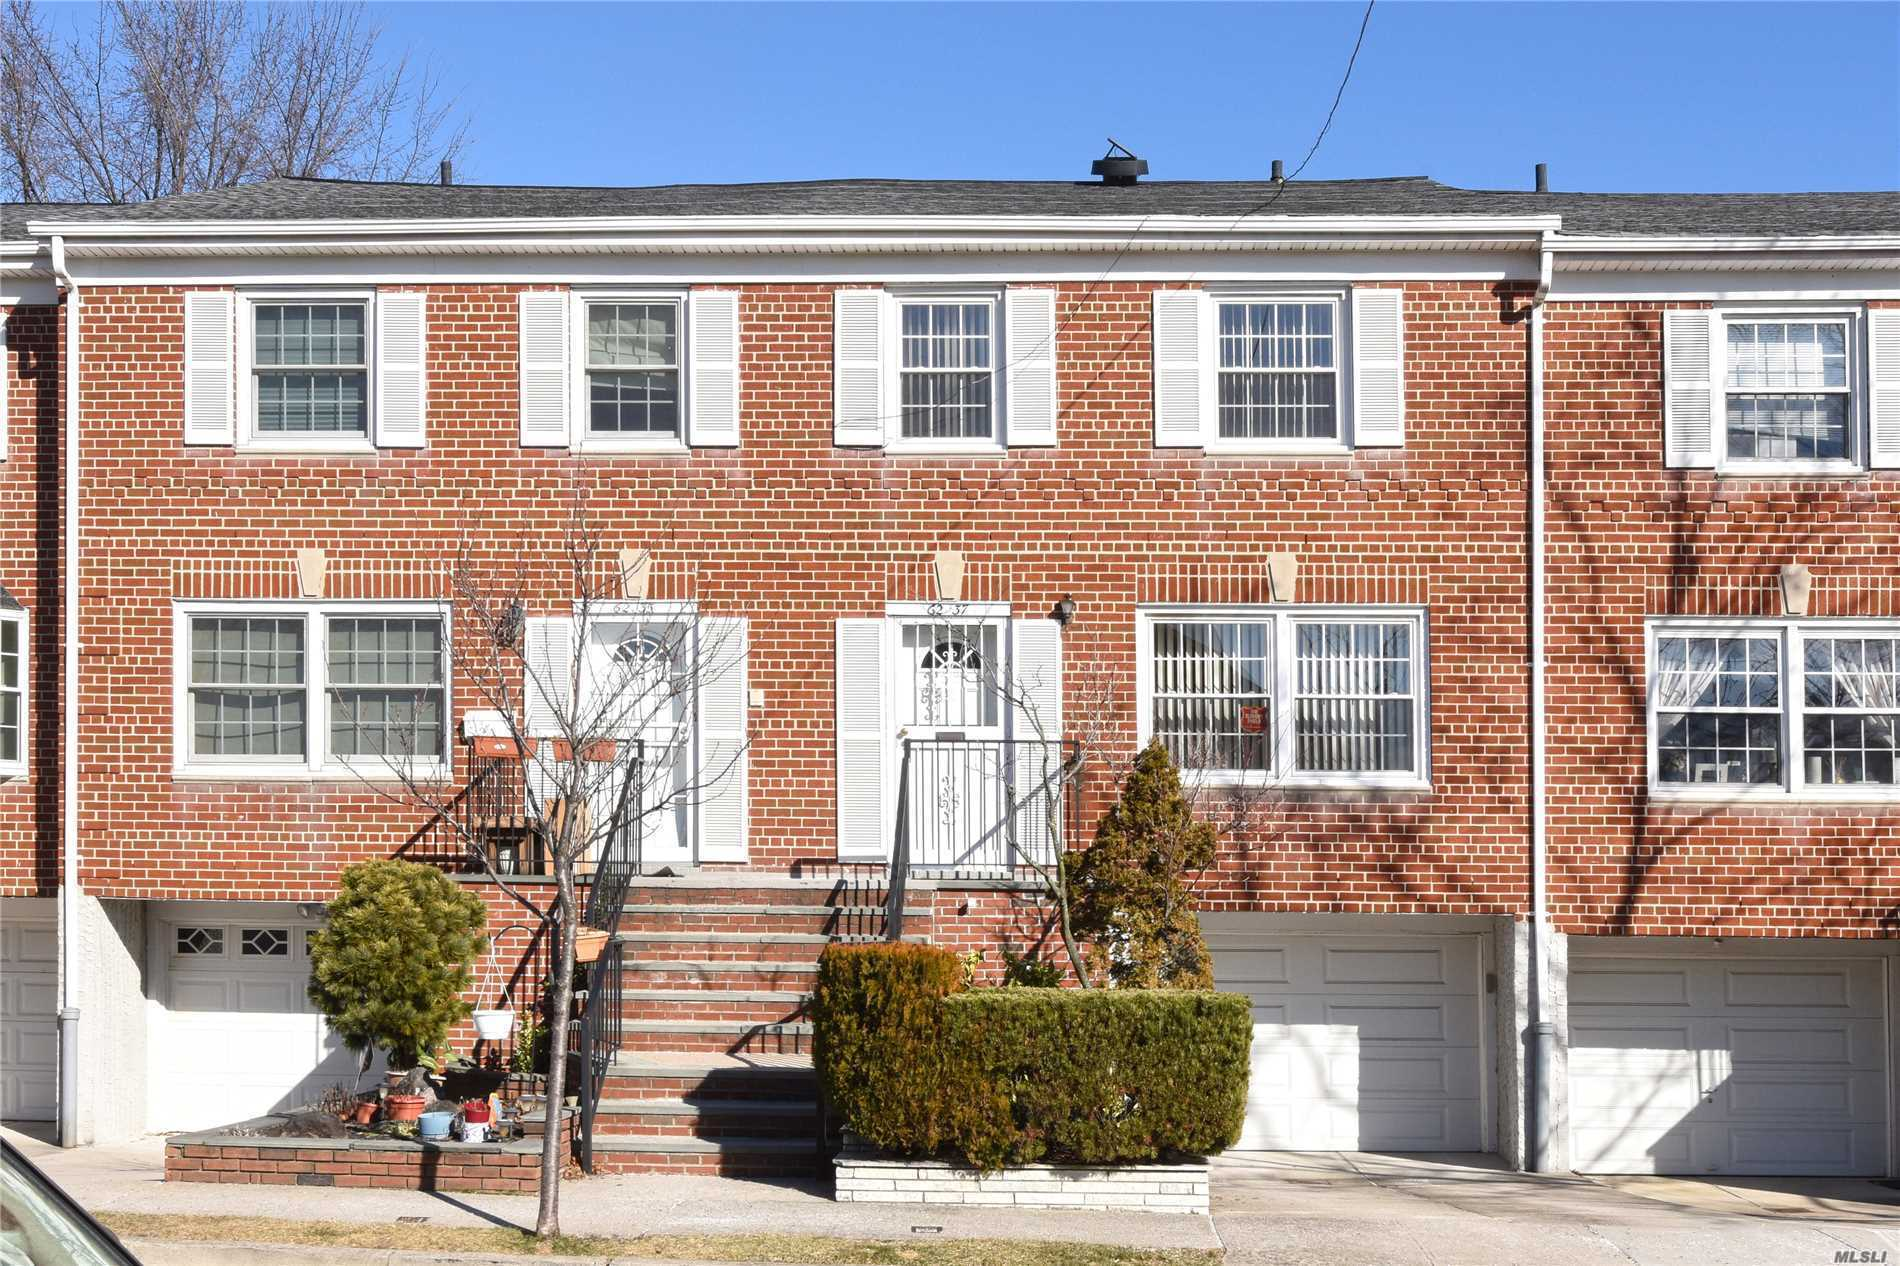 Douglaston Townhouse Largest Sq. Footage 3 Level Condo In Complex. Hrdwd Floors, Many Closets/Storage, Hi-Hats, Newr Stainless Kit Appl Cac, Gas Heat, Cookg & New Gas Hot Water Htr. New Roof+ $135 Assesmnt Till 12/19. Tiled Basement W/Separate Street Level Door + Indr Entrance From Large Insulated Garage. Own Yard & Patio, Plus 2nd Parking Space. Pool Club+Playgrnd. Common Area Landscaping, Snow Removl Included. Close To Flushing/N.Y.C Express Bus, L.I.R.R, Shops, Parkways, Bridges. D.O.G.S & Cats Welcome